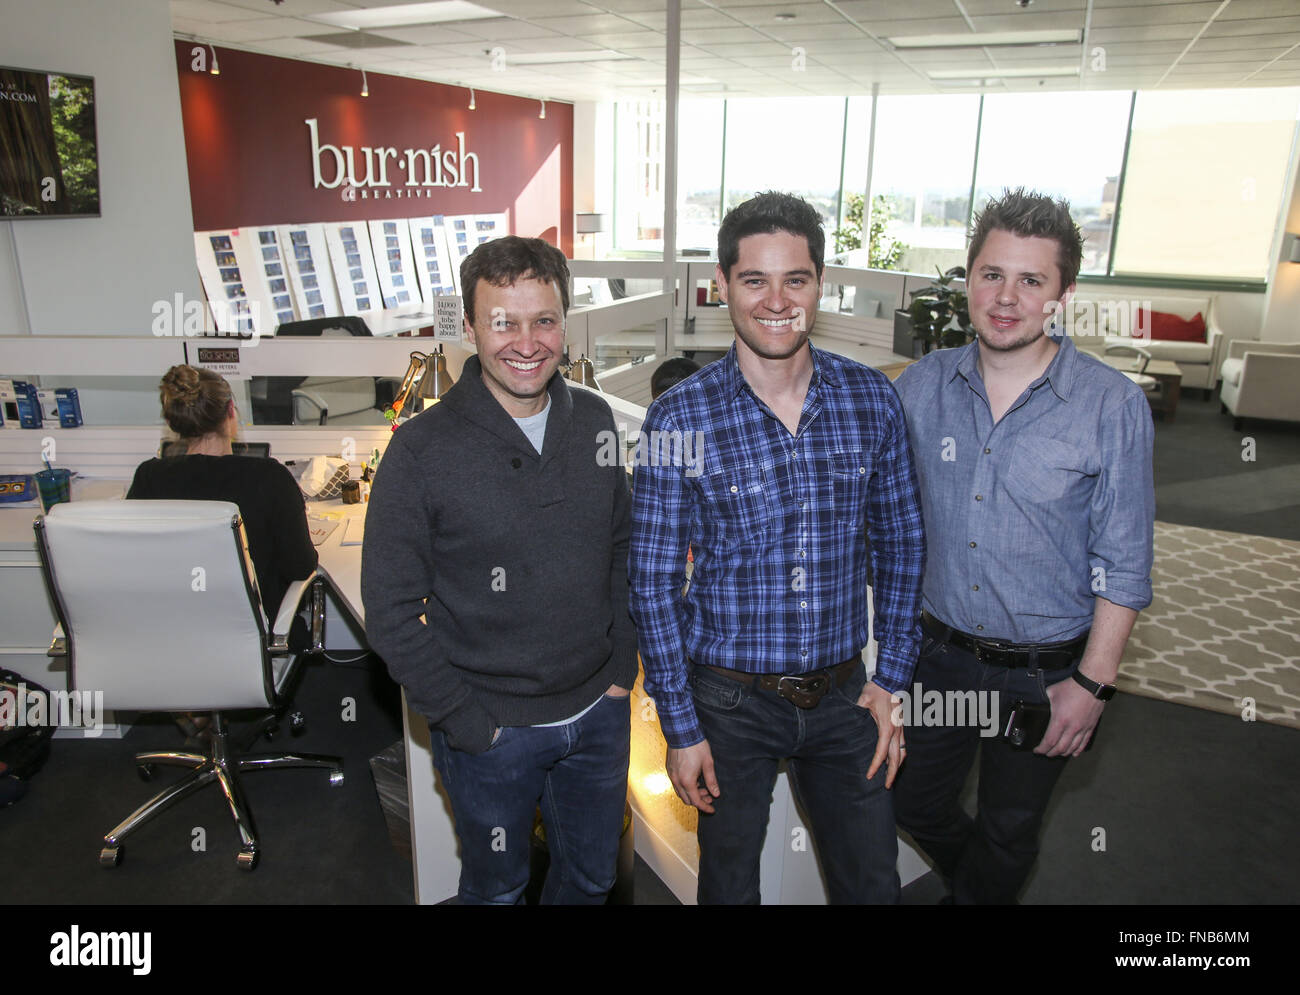 Los Angeles, California, USA. 3rd Feb, 2016. From L to R, Ed Servaites, Oren Castro and Ben Delamont, co-founders - Stock Image